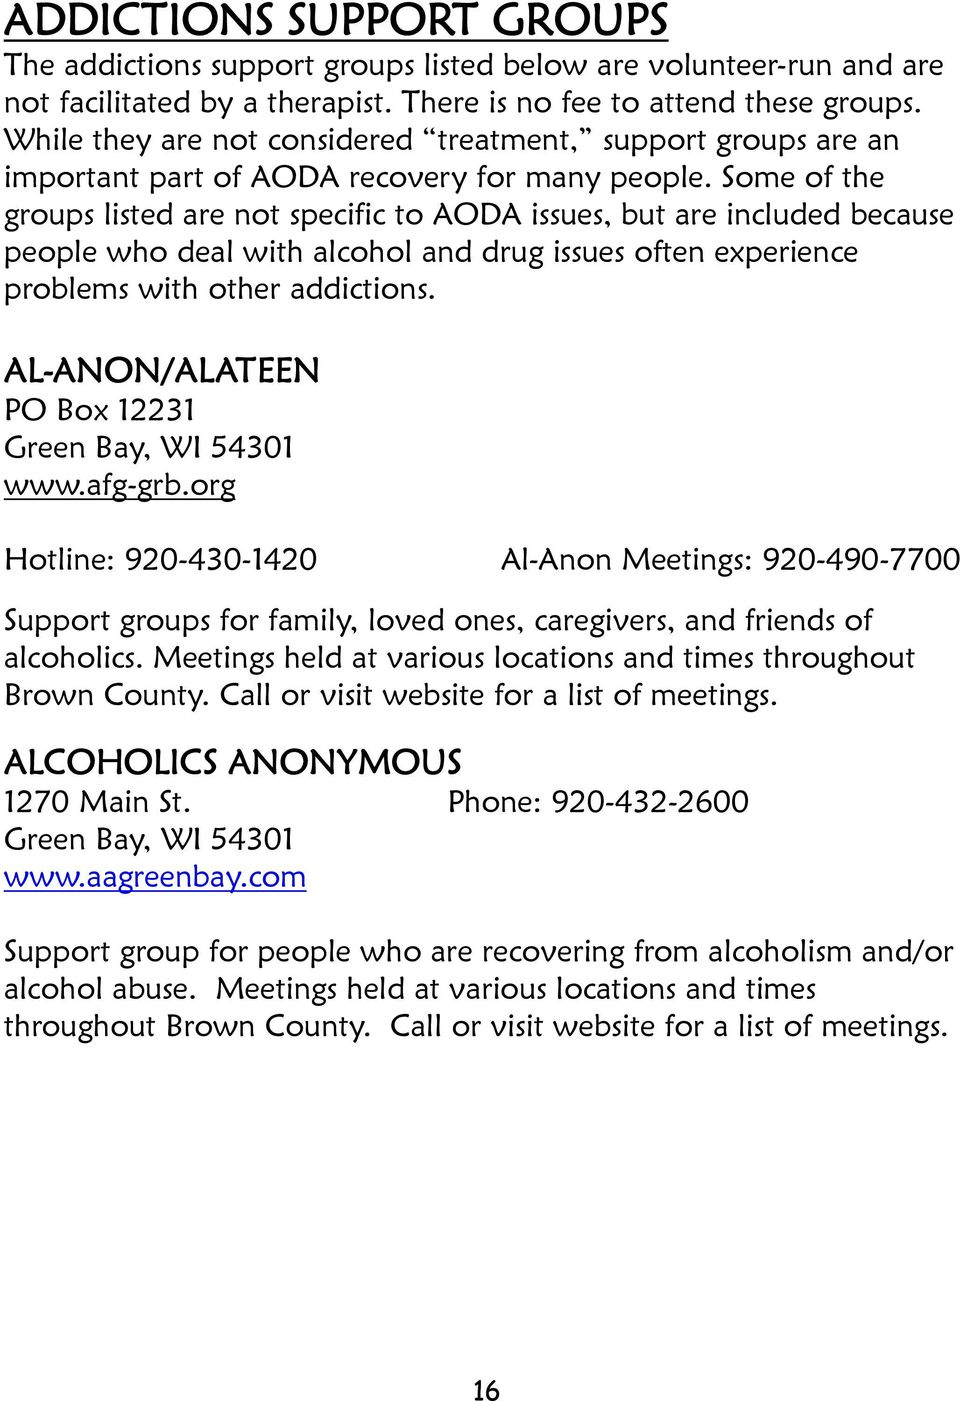 Some of the groups listed are not specific to AODA issues, but are included because people who deal with alcohol and drug issues often experience problems with other addictions.